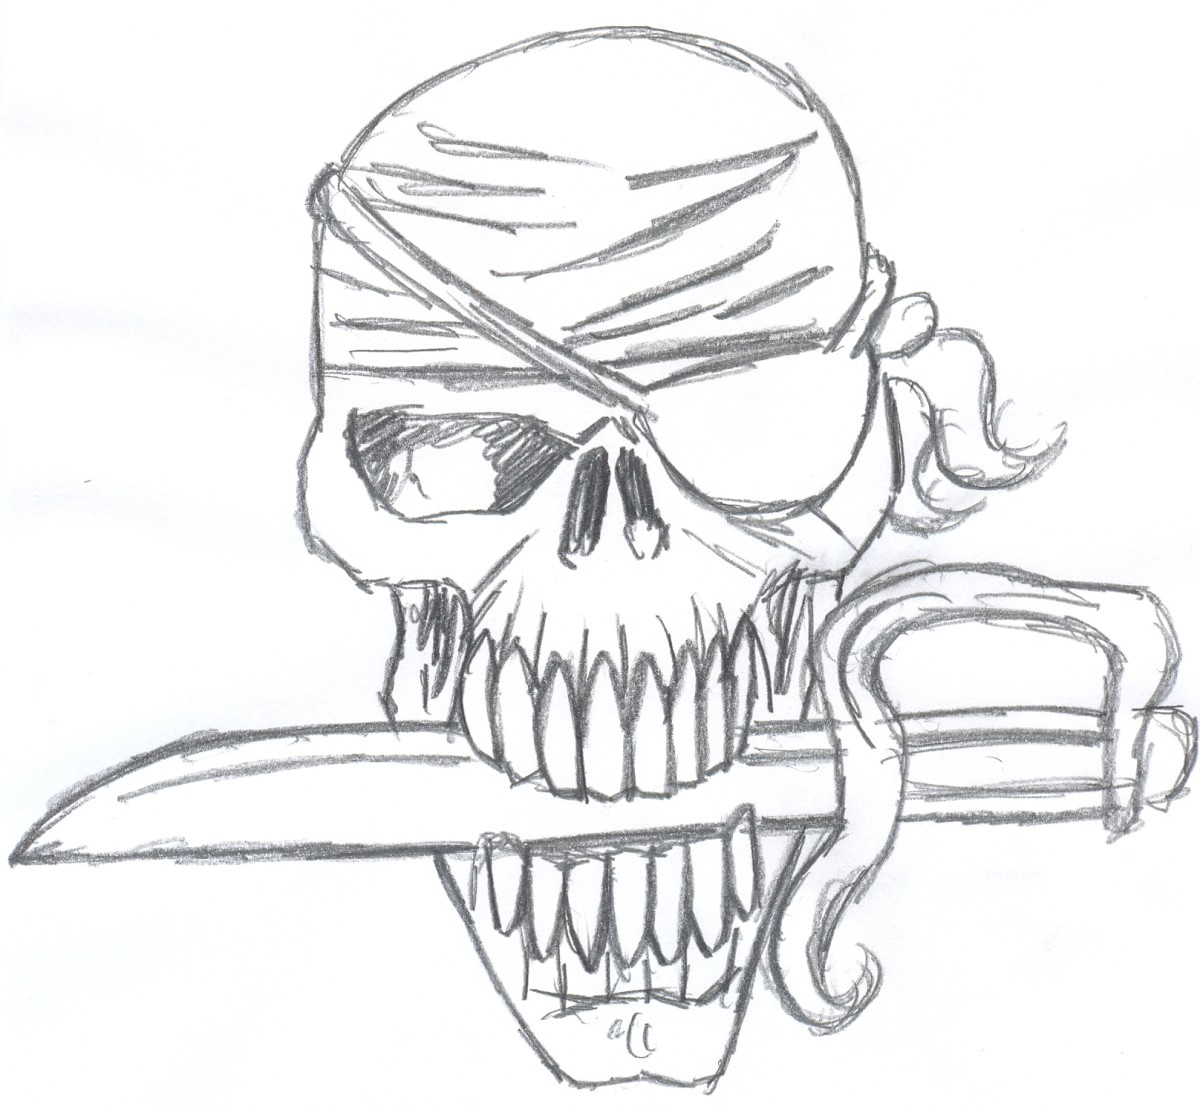 How to draw a pirate skull for Halloween.  Setp three - Adding more details brings out the character of this pirate skull.